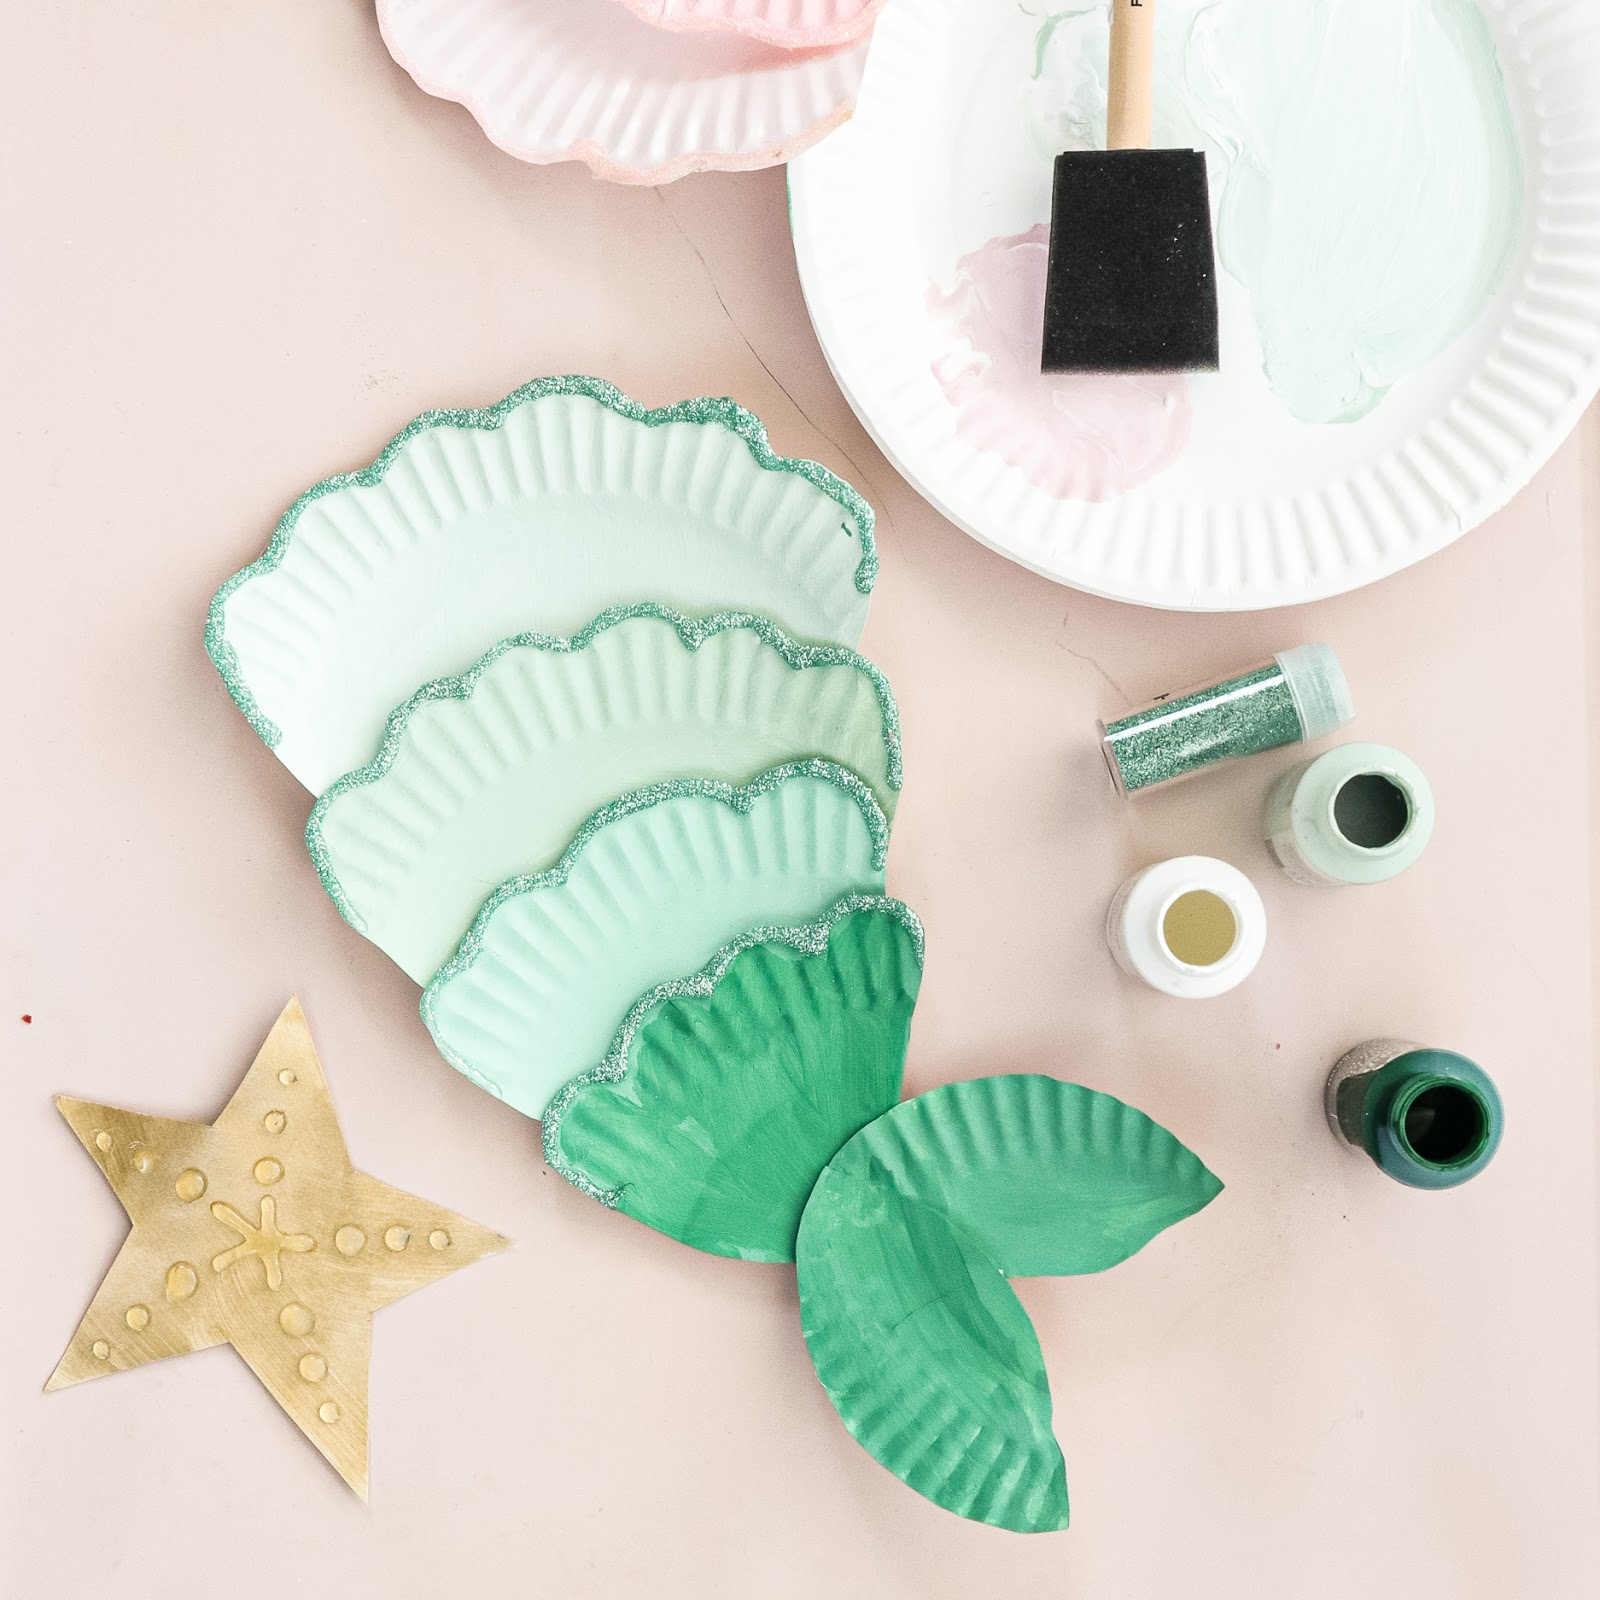 Paper Plate Craft mermaid tail